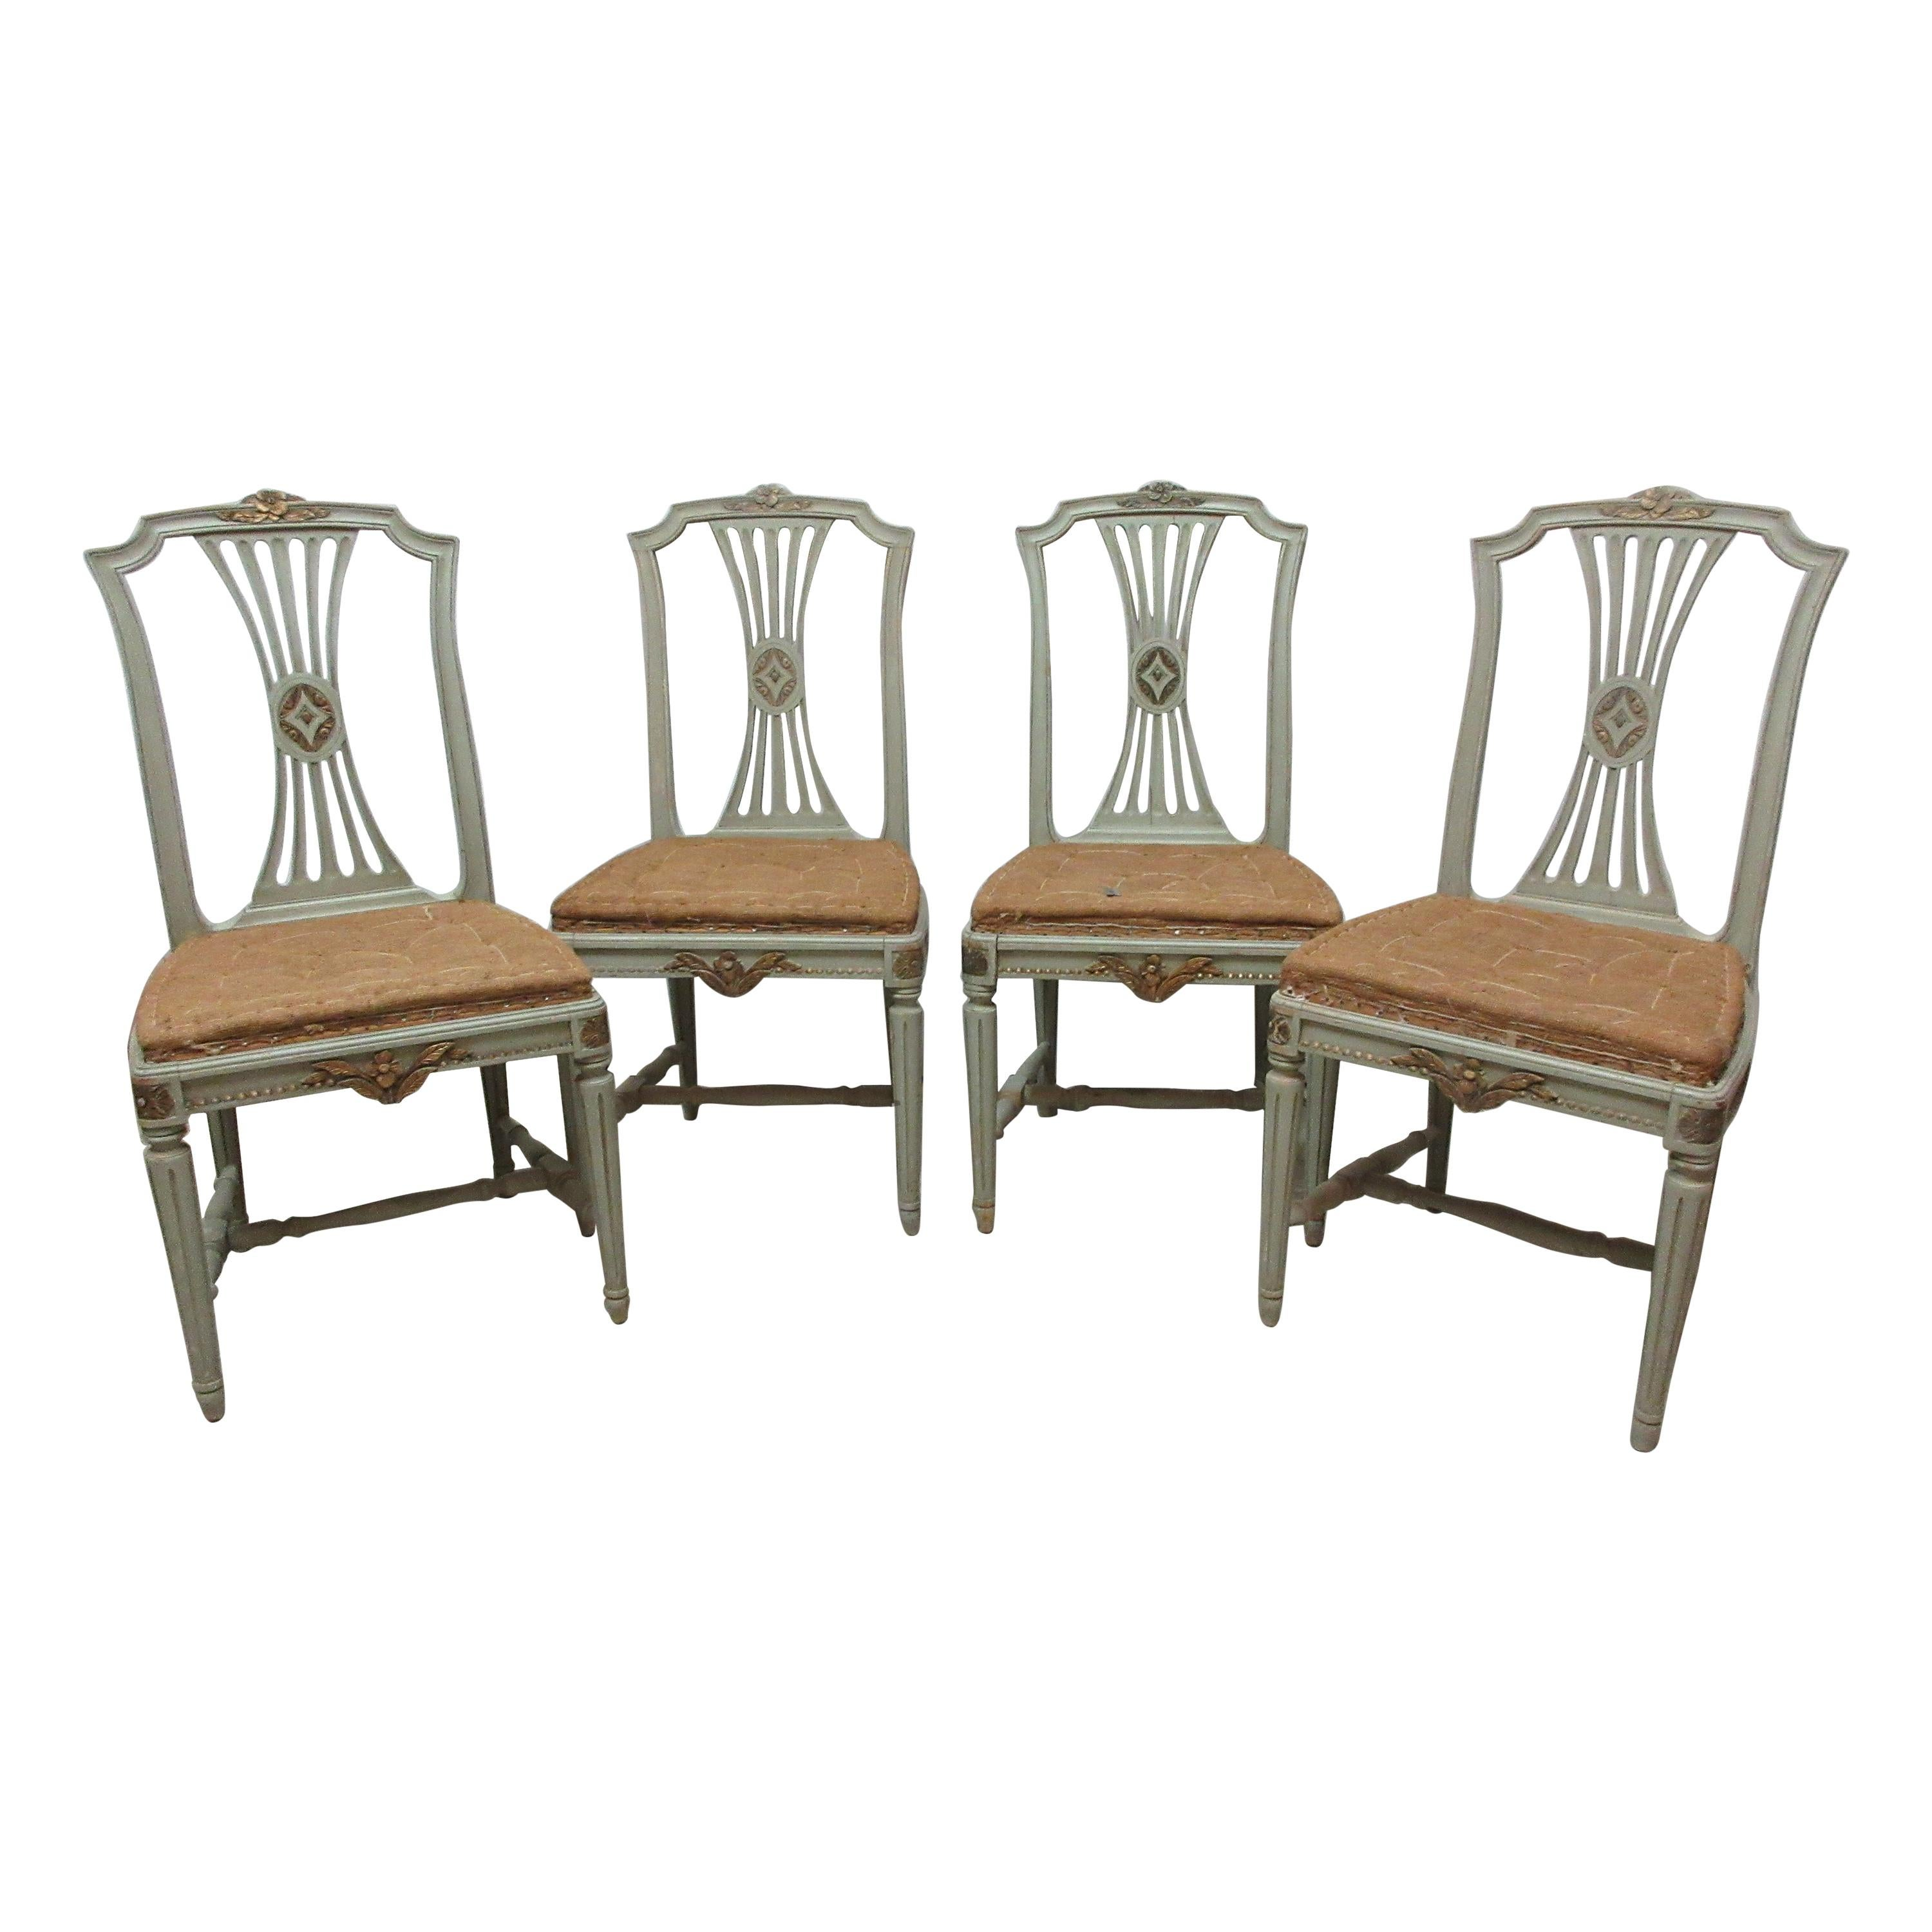 4 Original Paint Swedish Gustavian Side Chairs